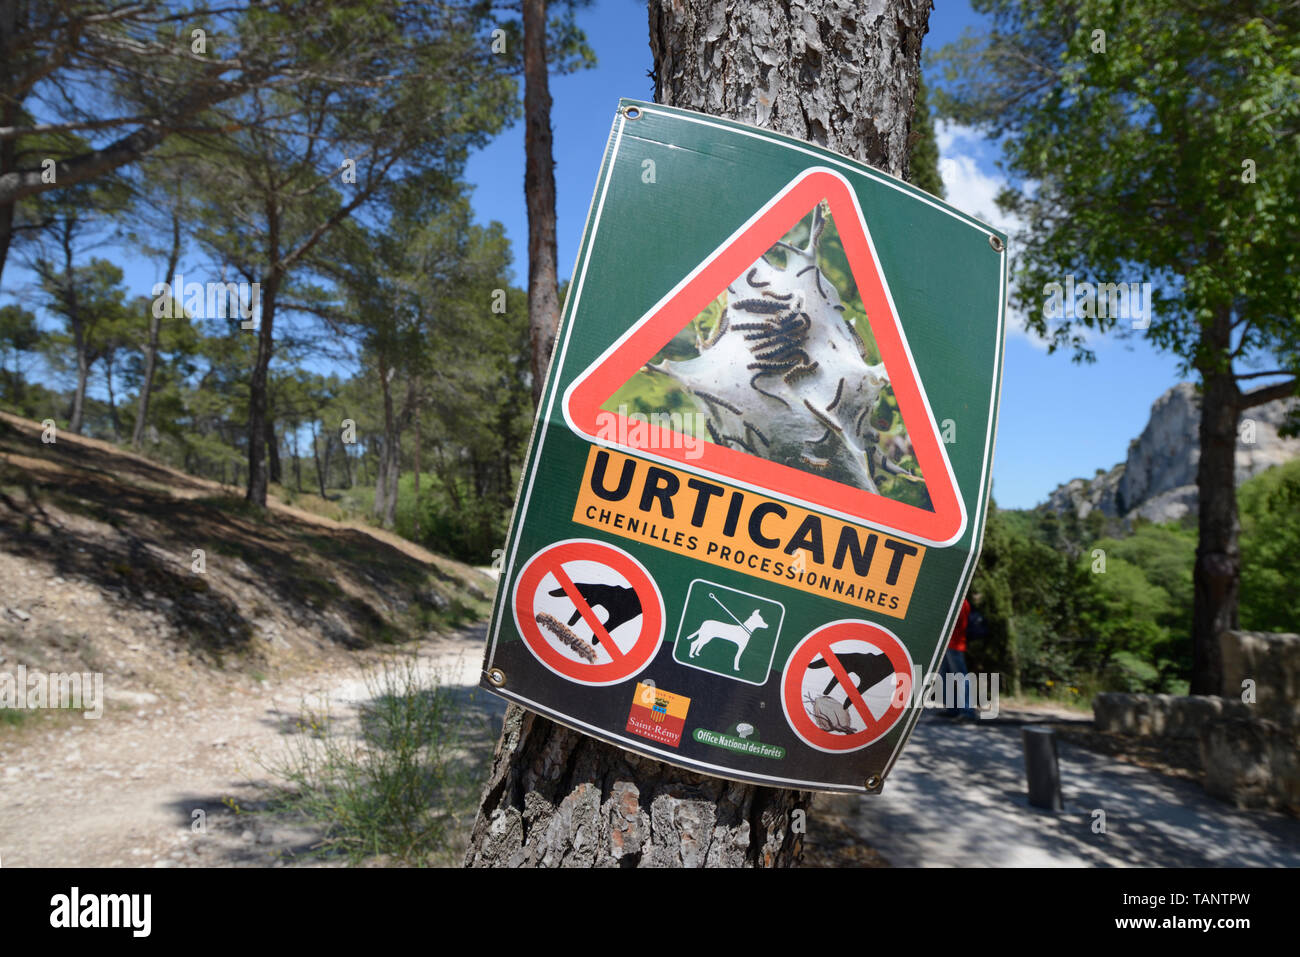 Warning Sign to Walkers about Pine Processional Caterpillars or Larvae, a Potential Health Hazard due to their Irritating Hairs Provence - Stock Image